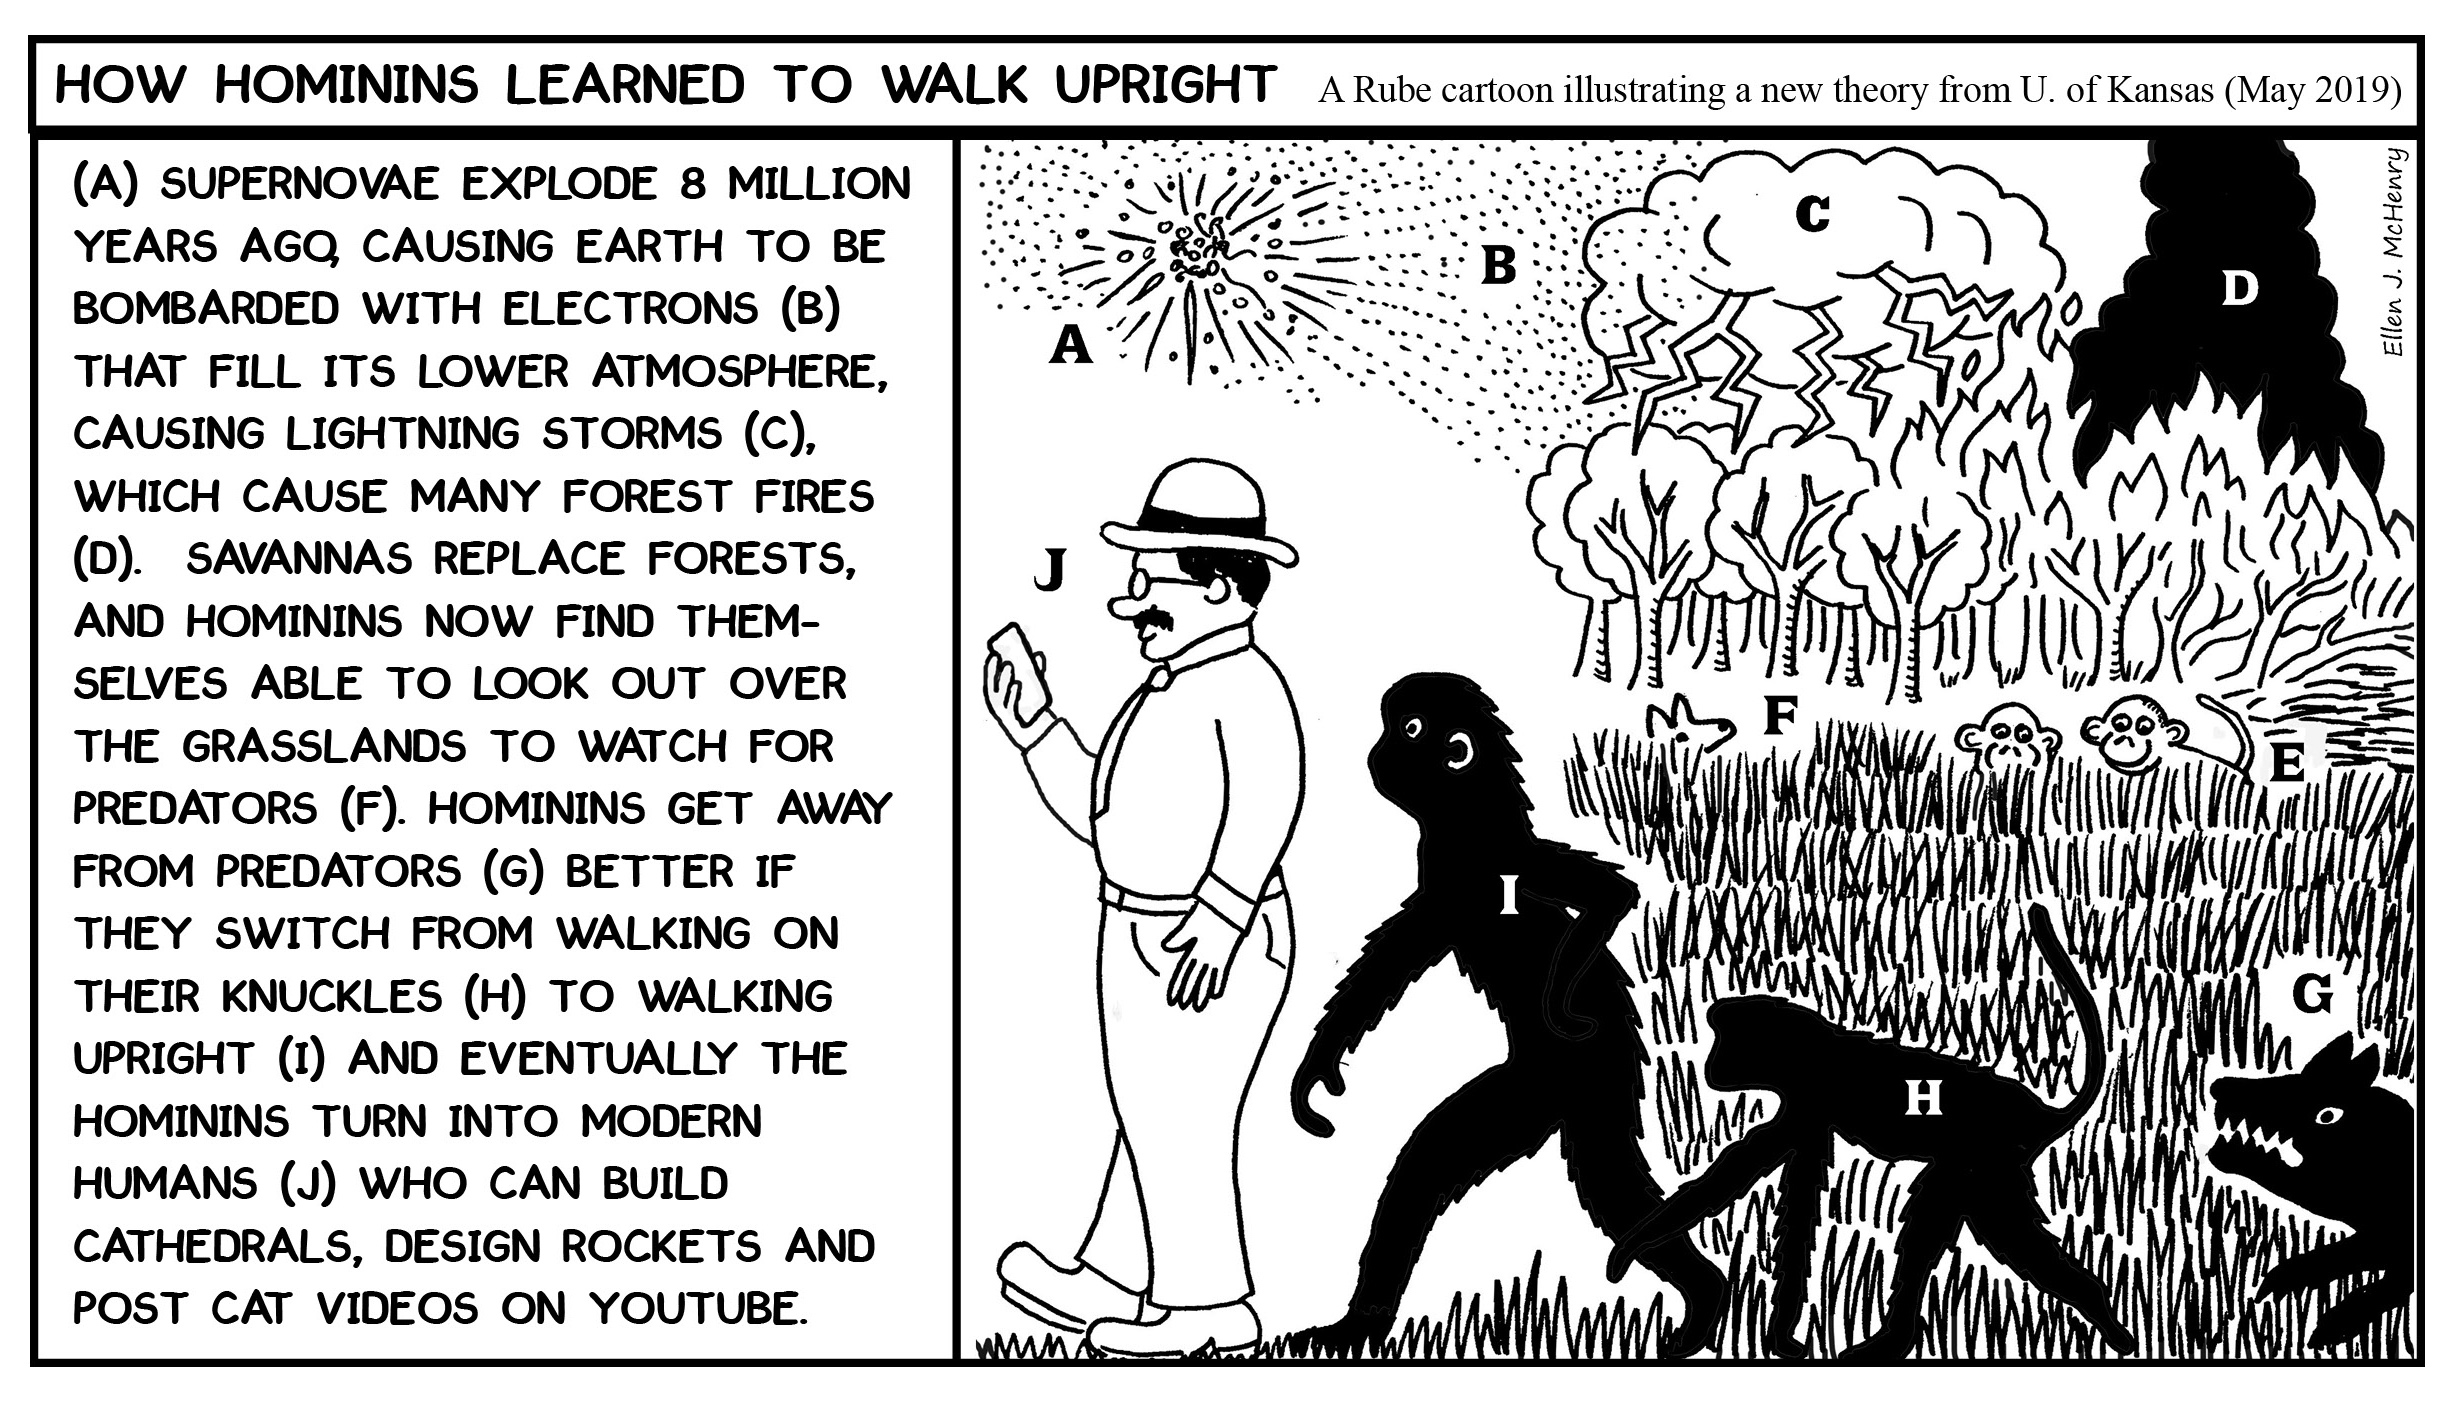 Cartoon drawing of absurdity of latest atheist theory on how we learned to walk upright: Supernovas!